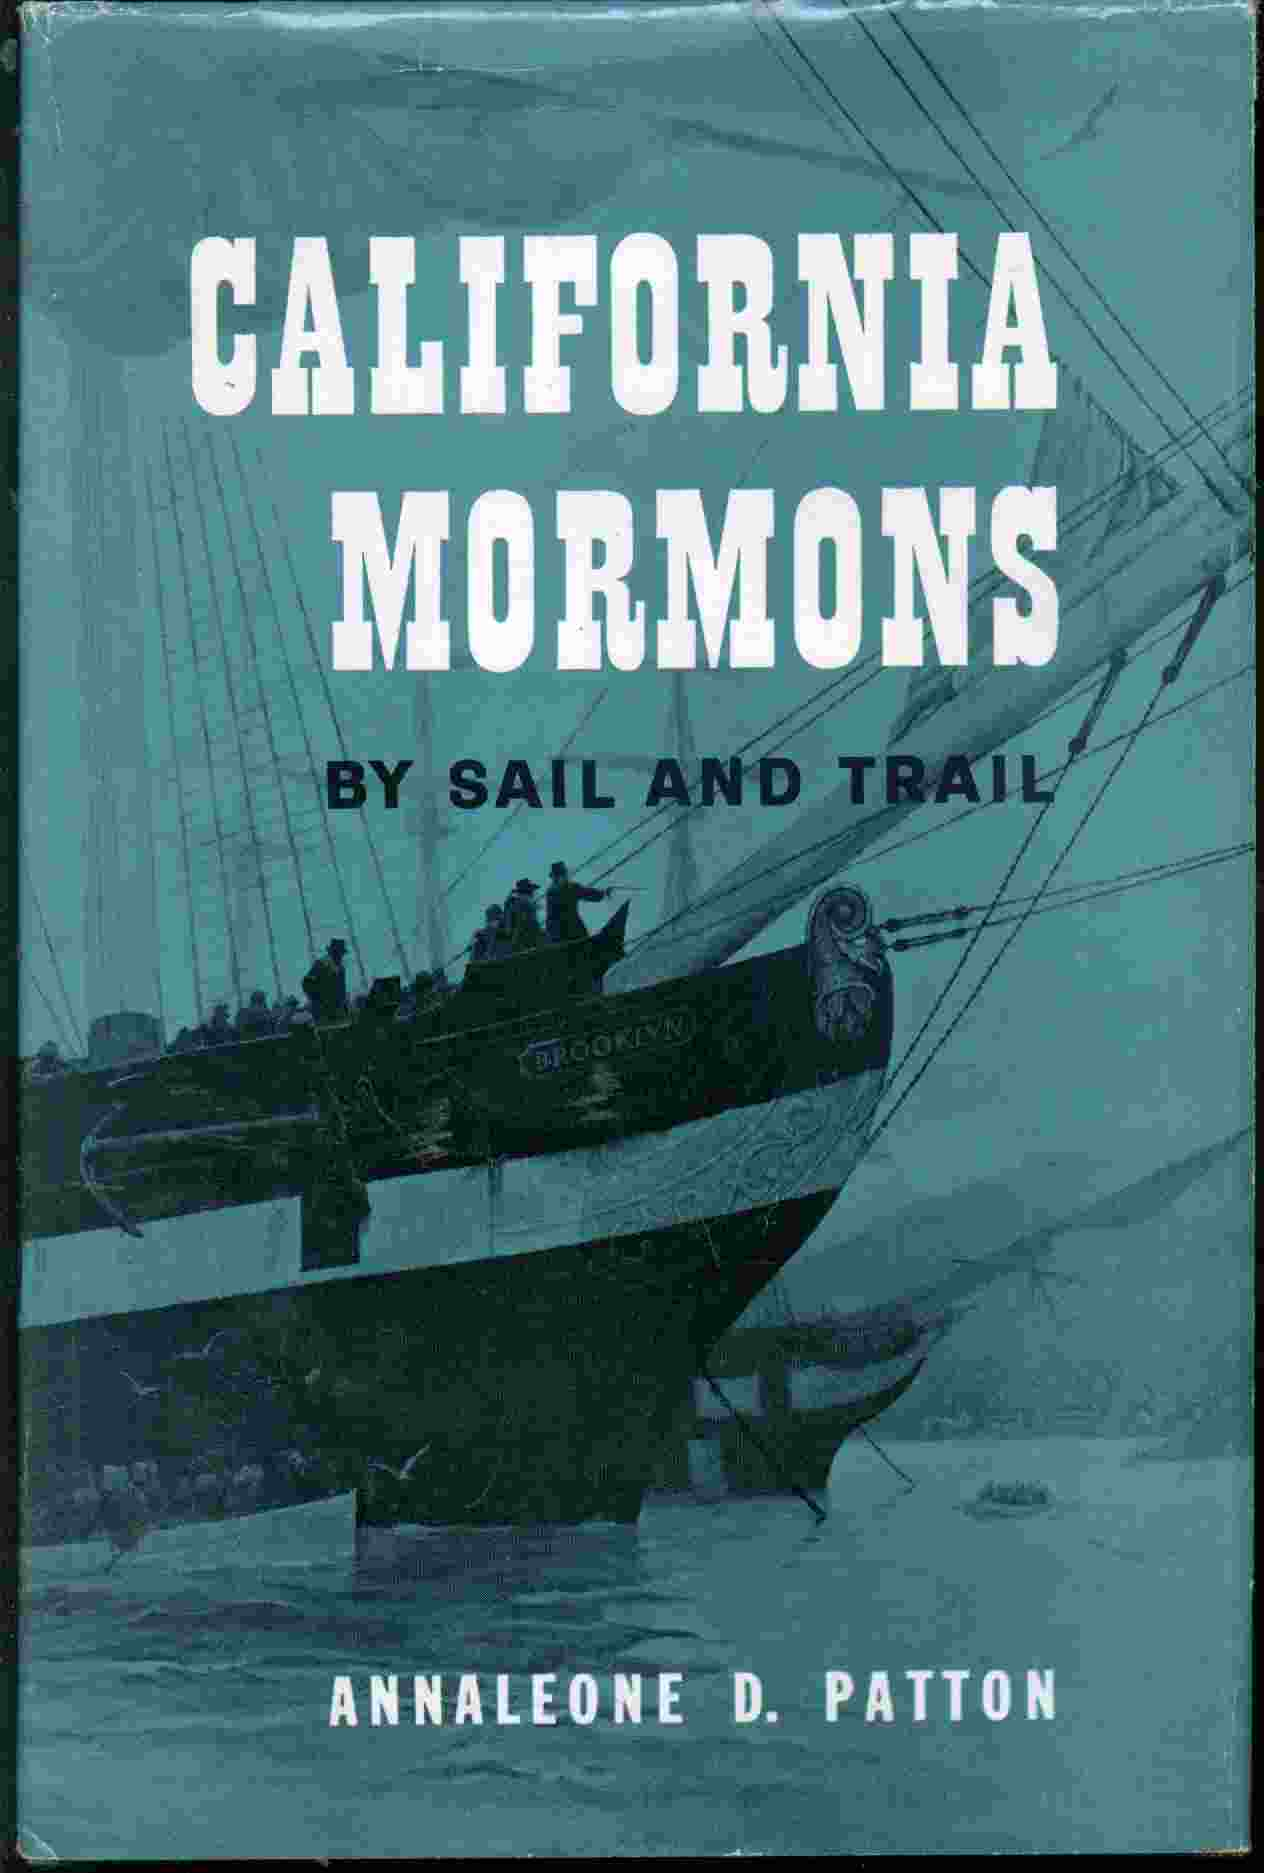 CALIFORNIA MORMONS - BY SAIL AND TRAIL, Patton, Annaleone D.